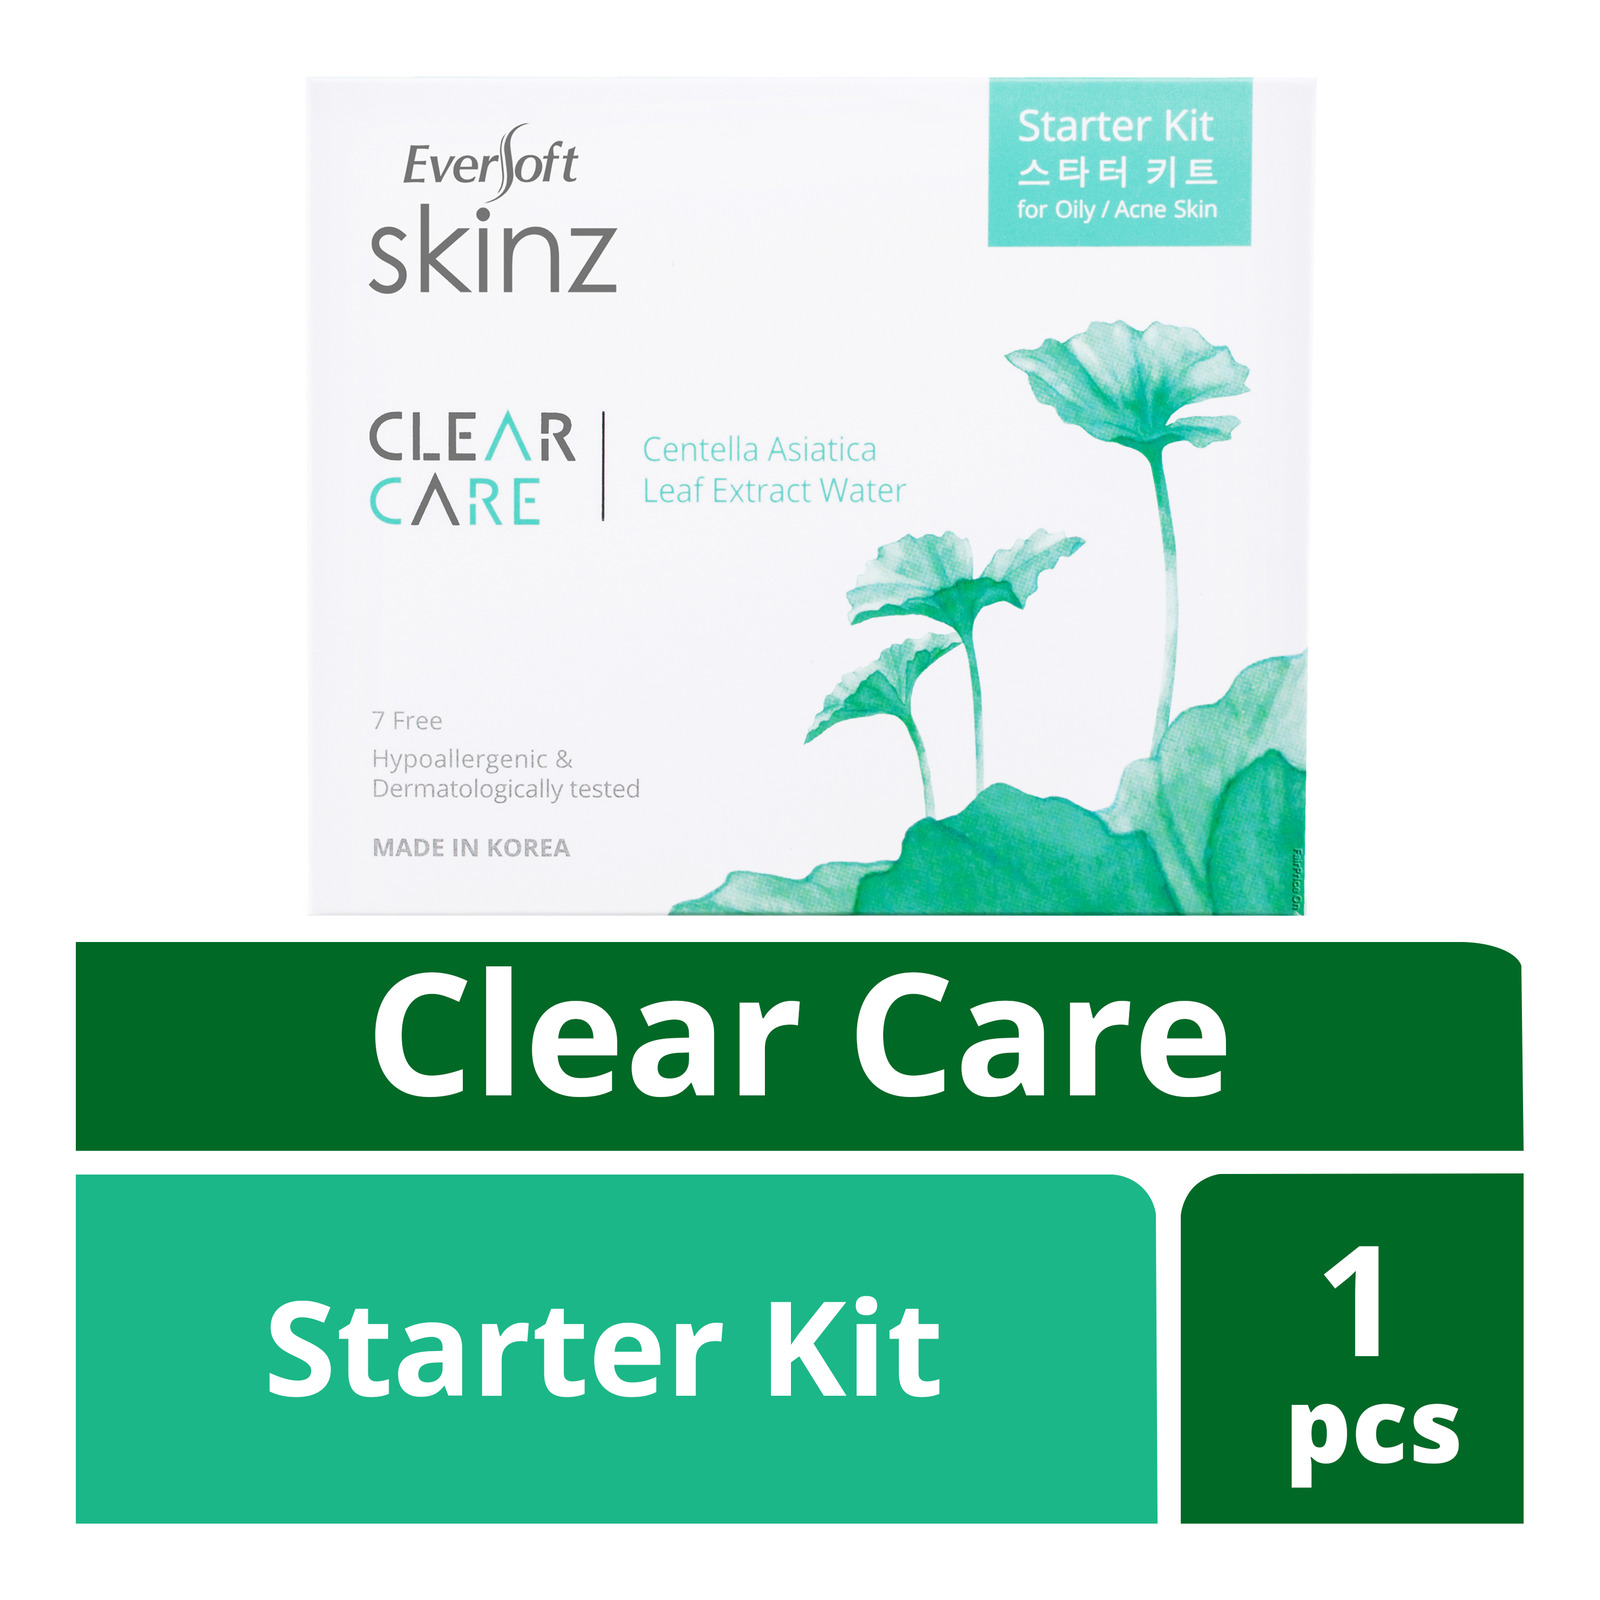 Eversoft Skinz Clear Care Starter Kit